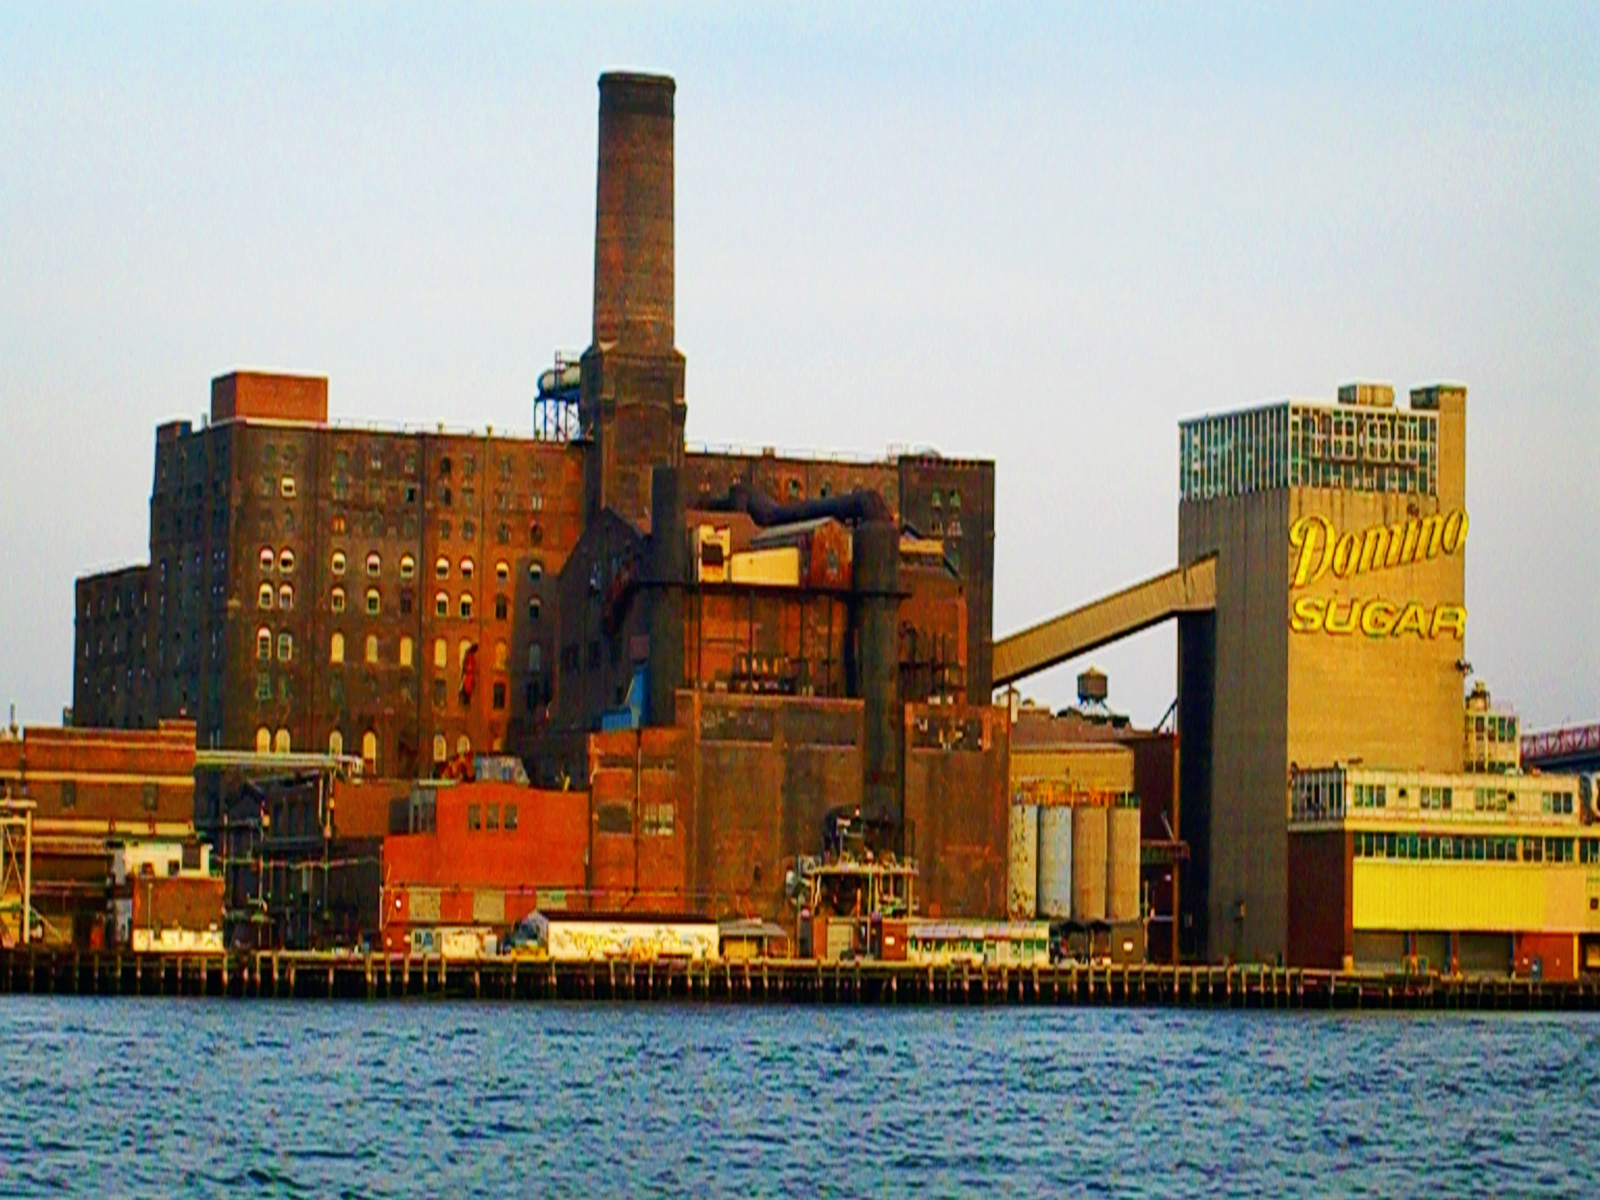 Domino Sugar Refinery Hit With $2.35M Jury Award for Racial Bias